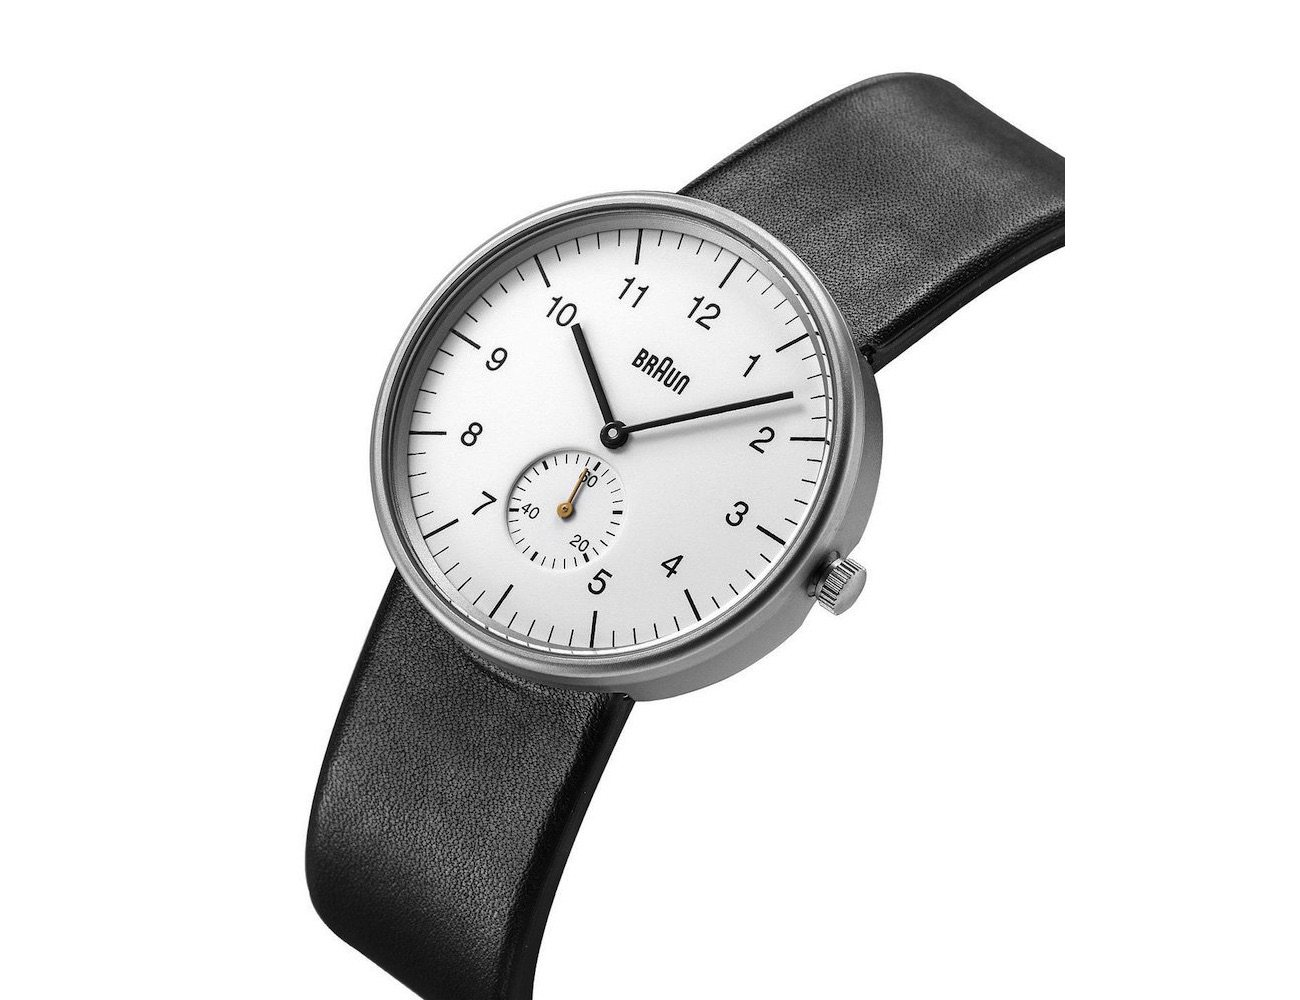 Braun BN0024 Watch – With a Leather Strap and Stainless Steel Case